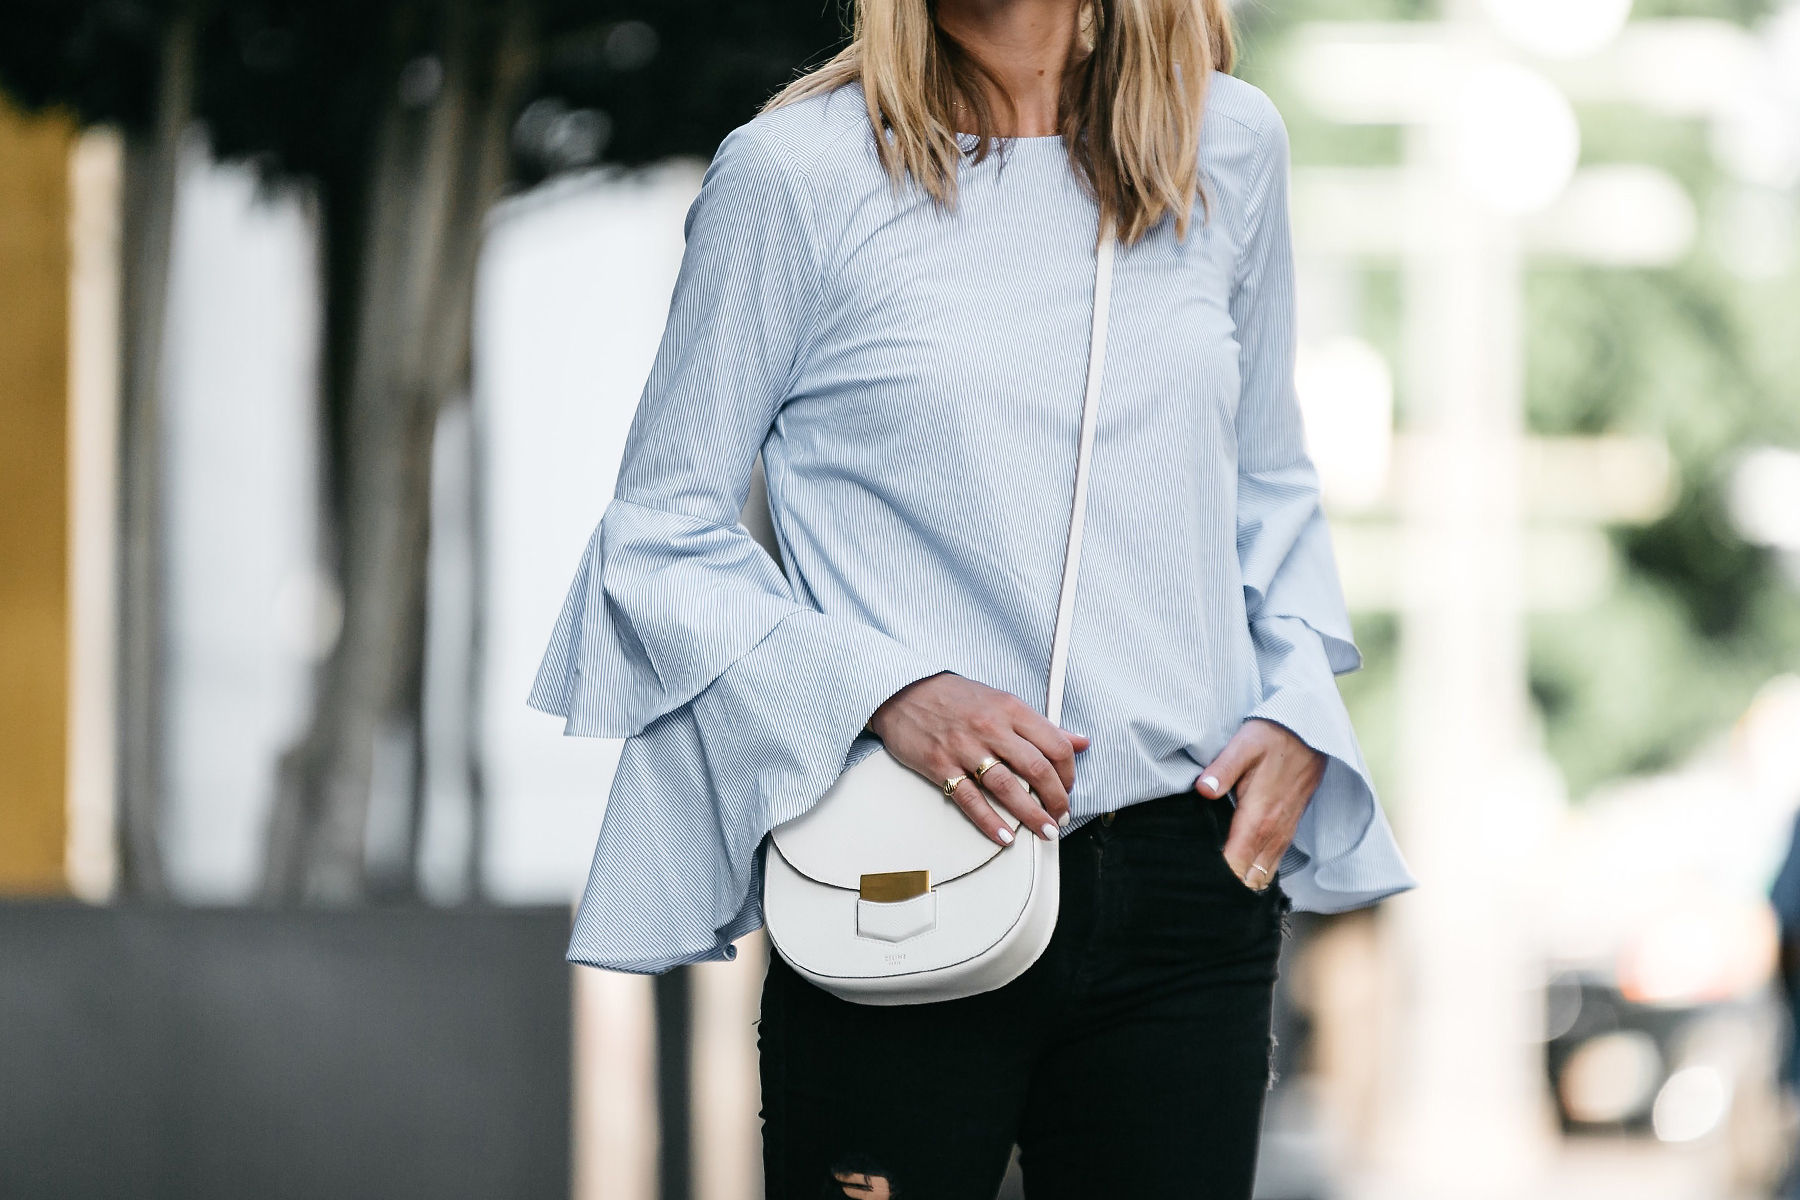 Nordstrom Blue Bell Sleeve Top Black Ripped Skinny Jeans Outfit Celine Trotteur White Crossbody Fashion Jackson Dallas Blogger Fashion Blogger Street Style